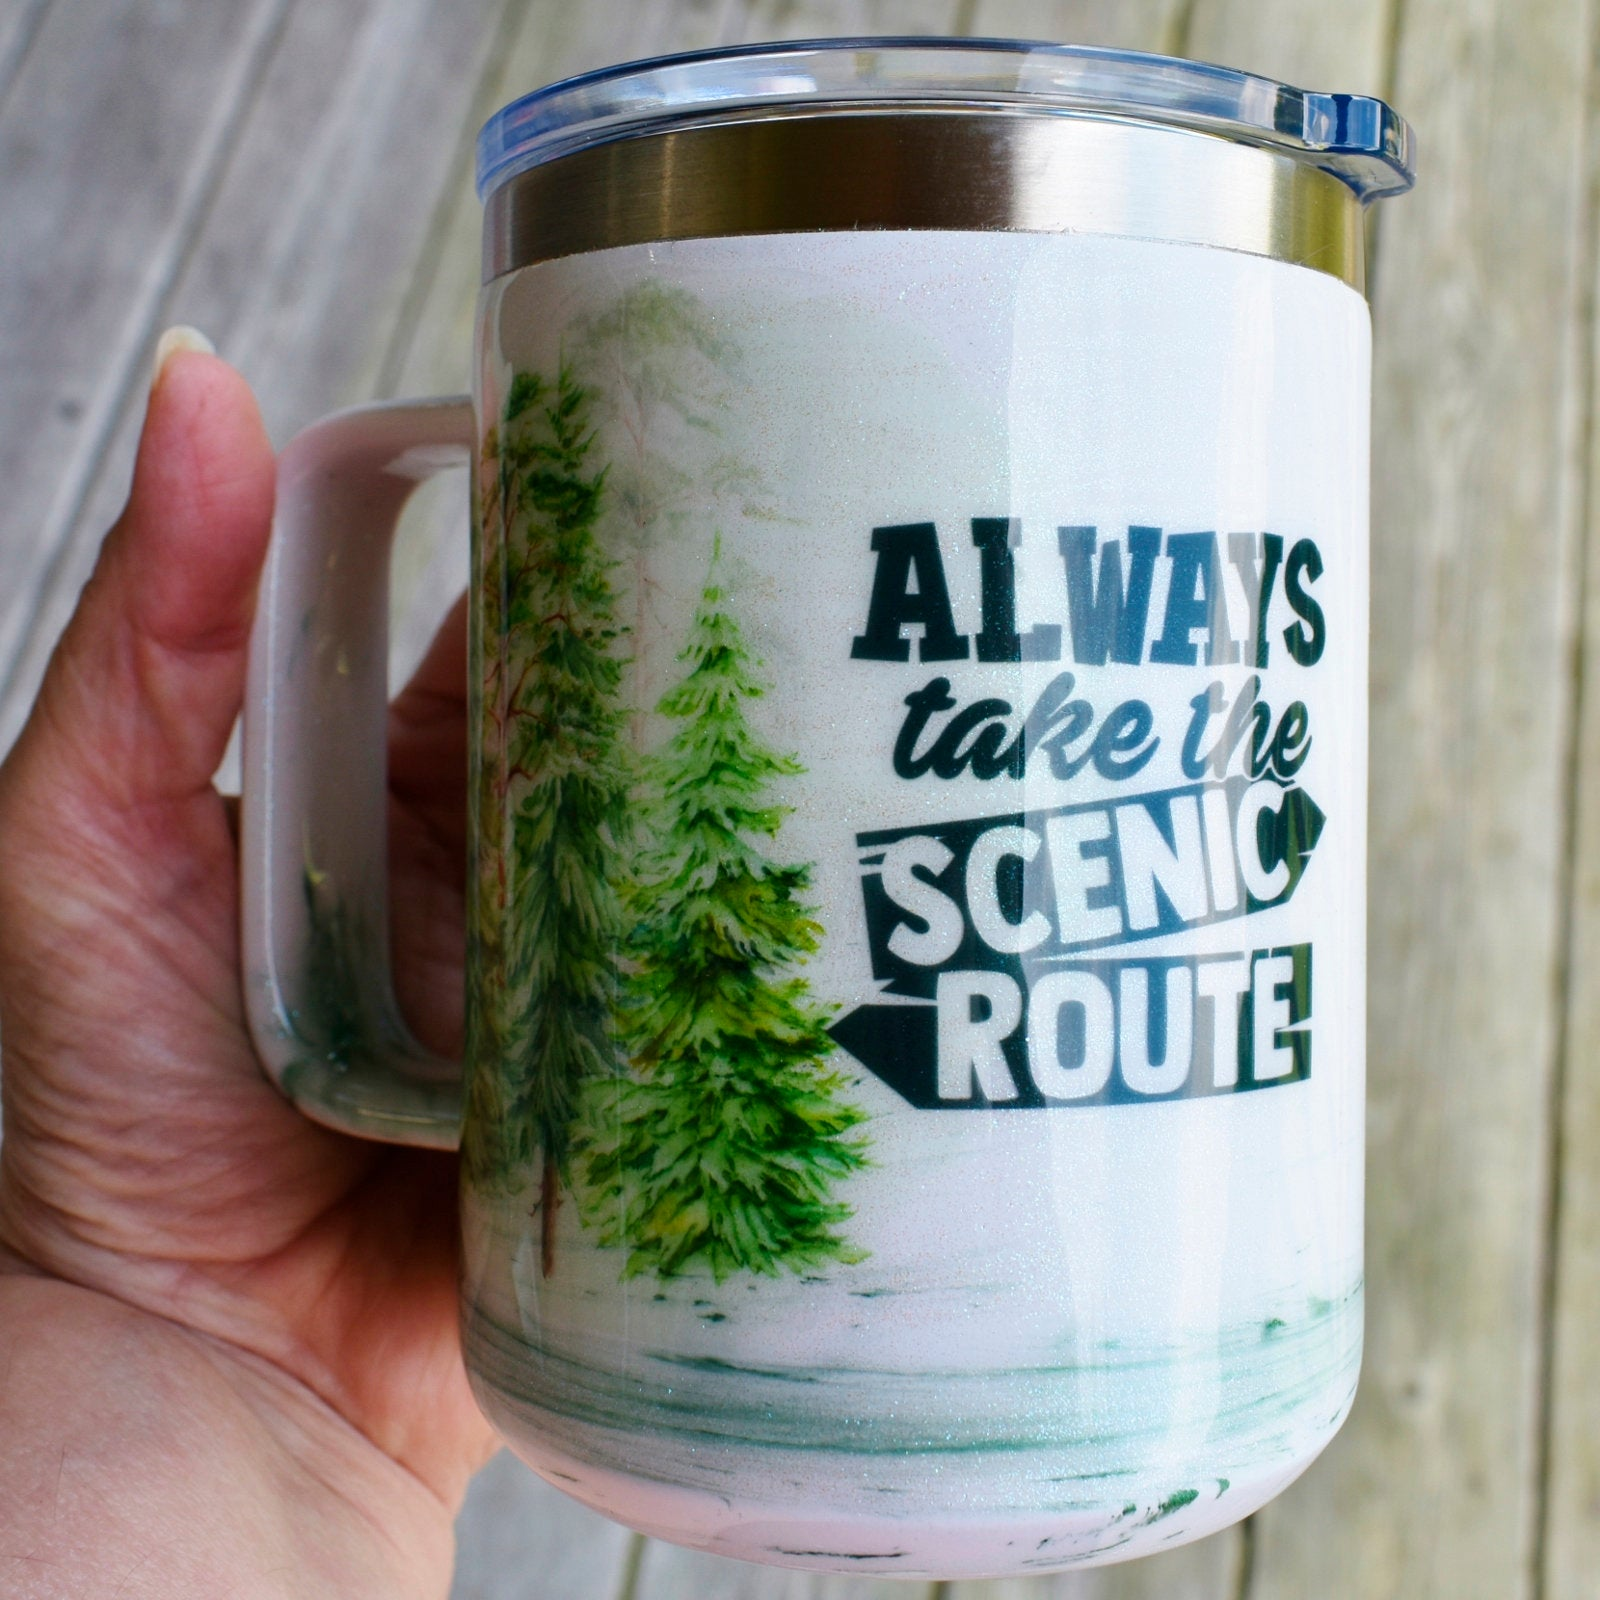 Always Take The Scenic Route Coffee Mug Camping Outdoor Lover Gift Pine Tree Theme Stainless Steel Coffee Mug